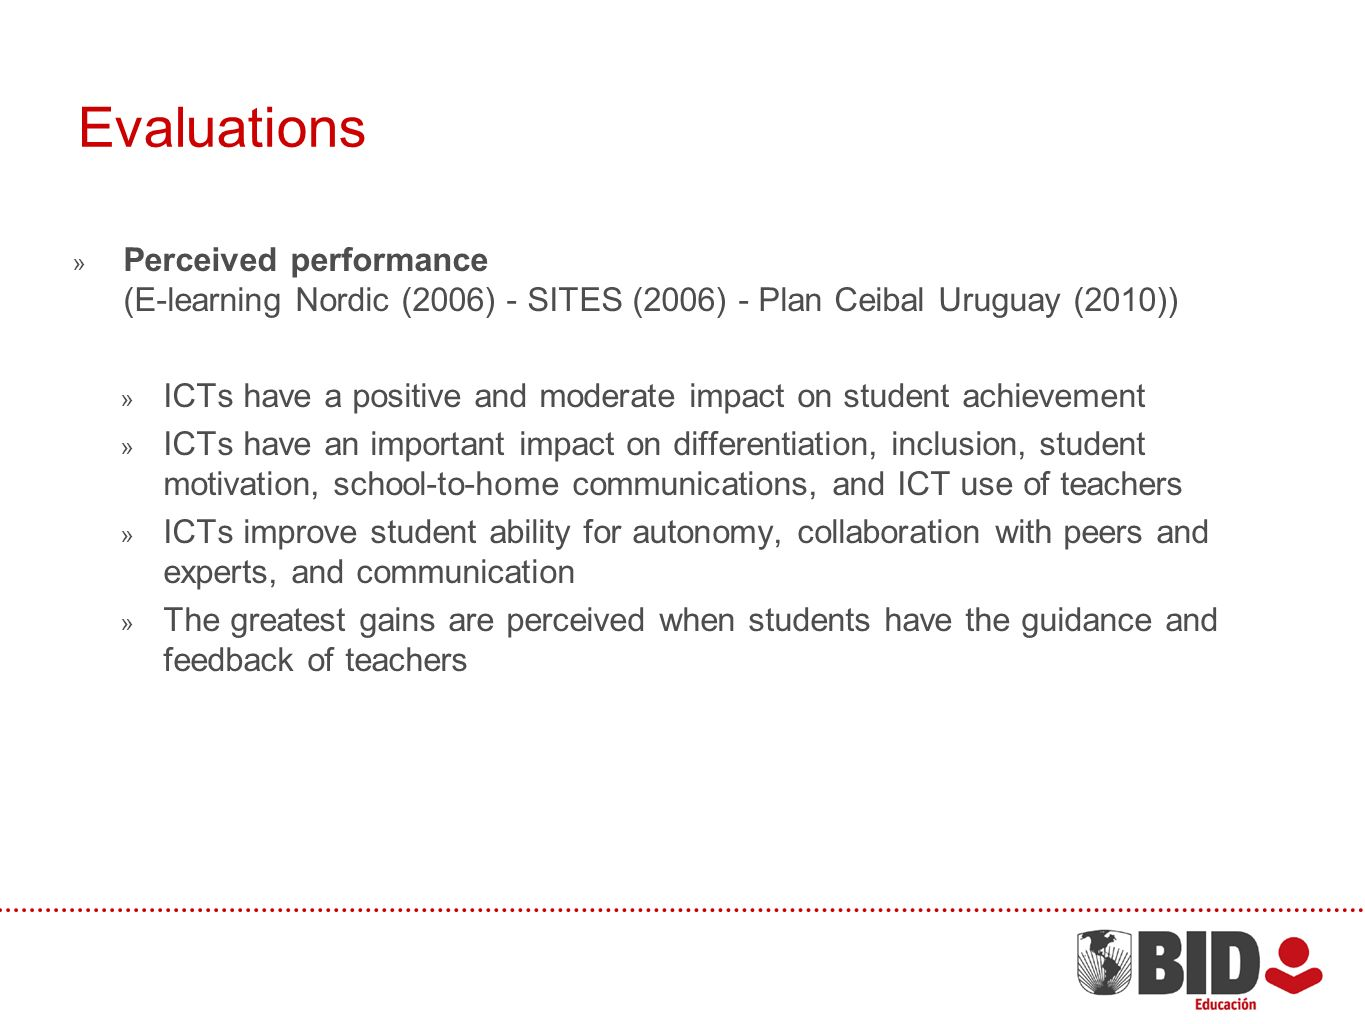 Evaluations Perceived performance (E-learning Nordic (2006) - SITES (2006) - Plan Ceibal Uruguay (2010)) ICTs have a positive and moderate impact on student achievement ICTs have an important impact on differentiation, inclusion, student motivation, school-to-home communications, and ICT use of teachers ICTs improve student ability for autonomy, collaboration with peers and experts, and communication The greatest gains are perceived when students have the guidance and feedback of teachers